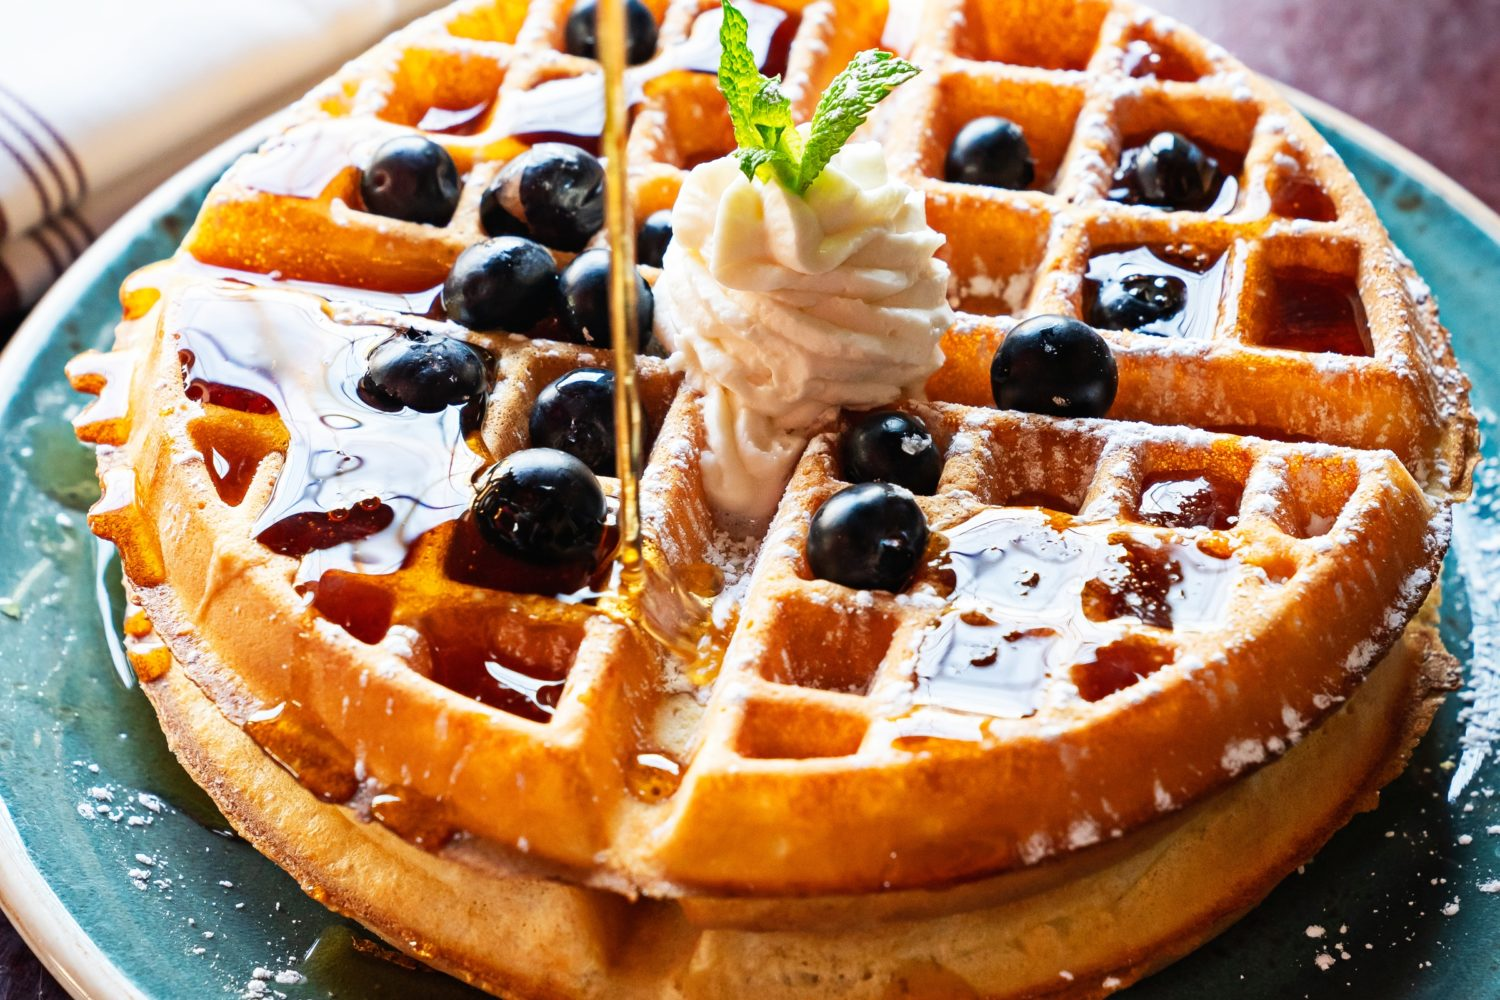 Blueberry ricotta waffles at Brookland's Finest. Photograph by Scott Suchman.